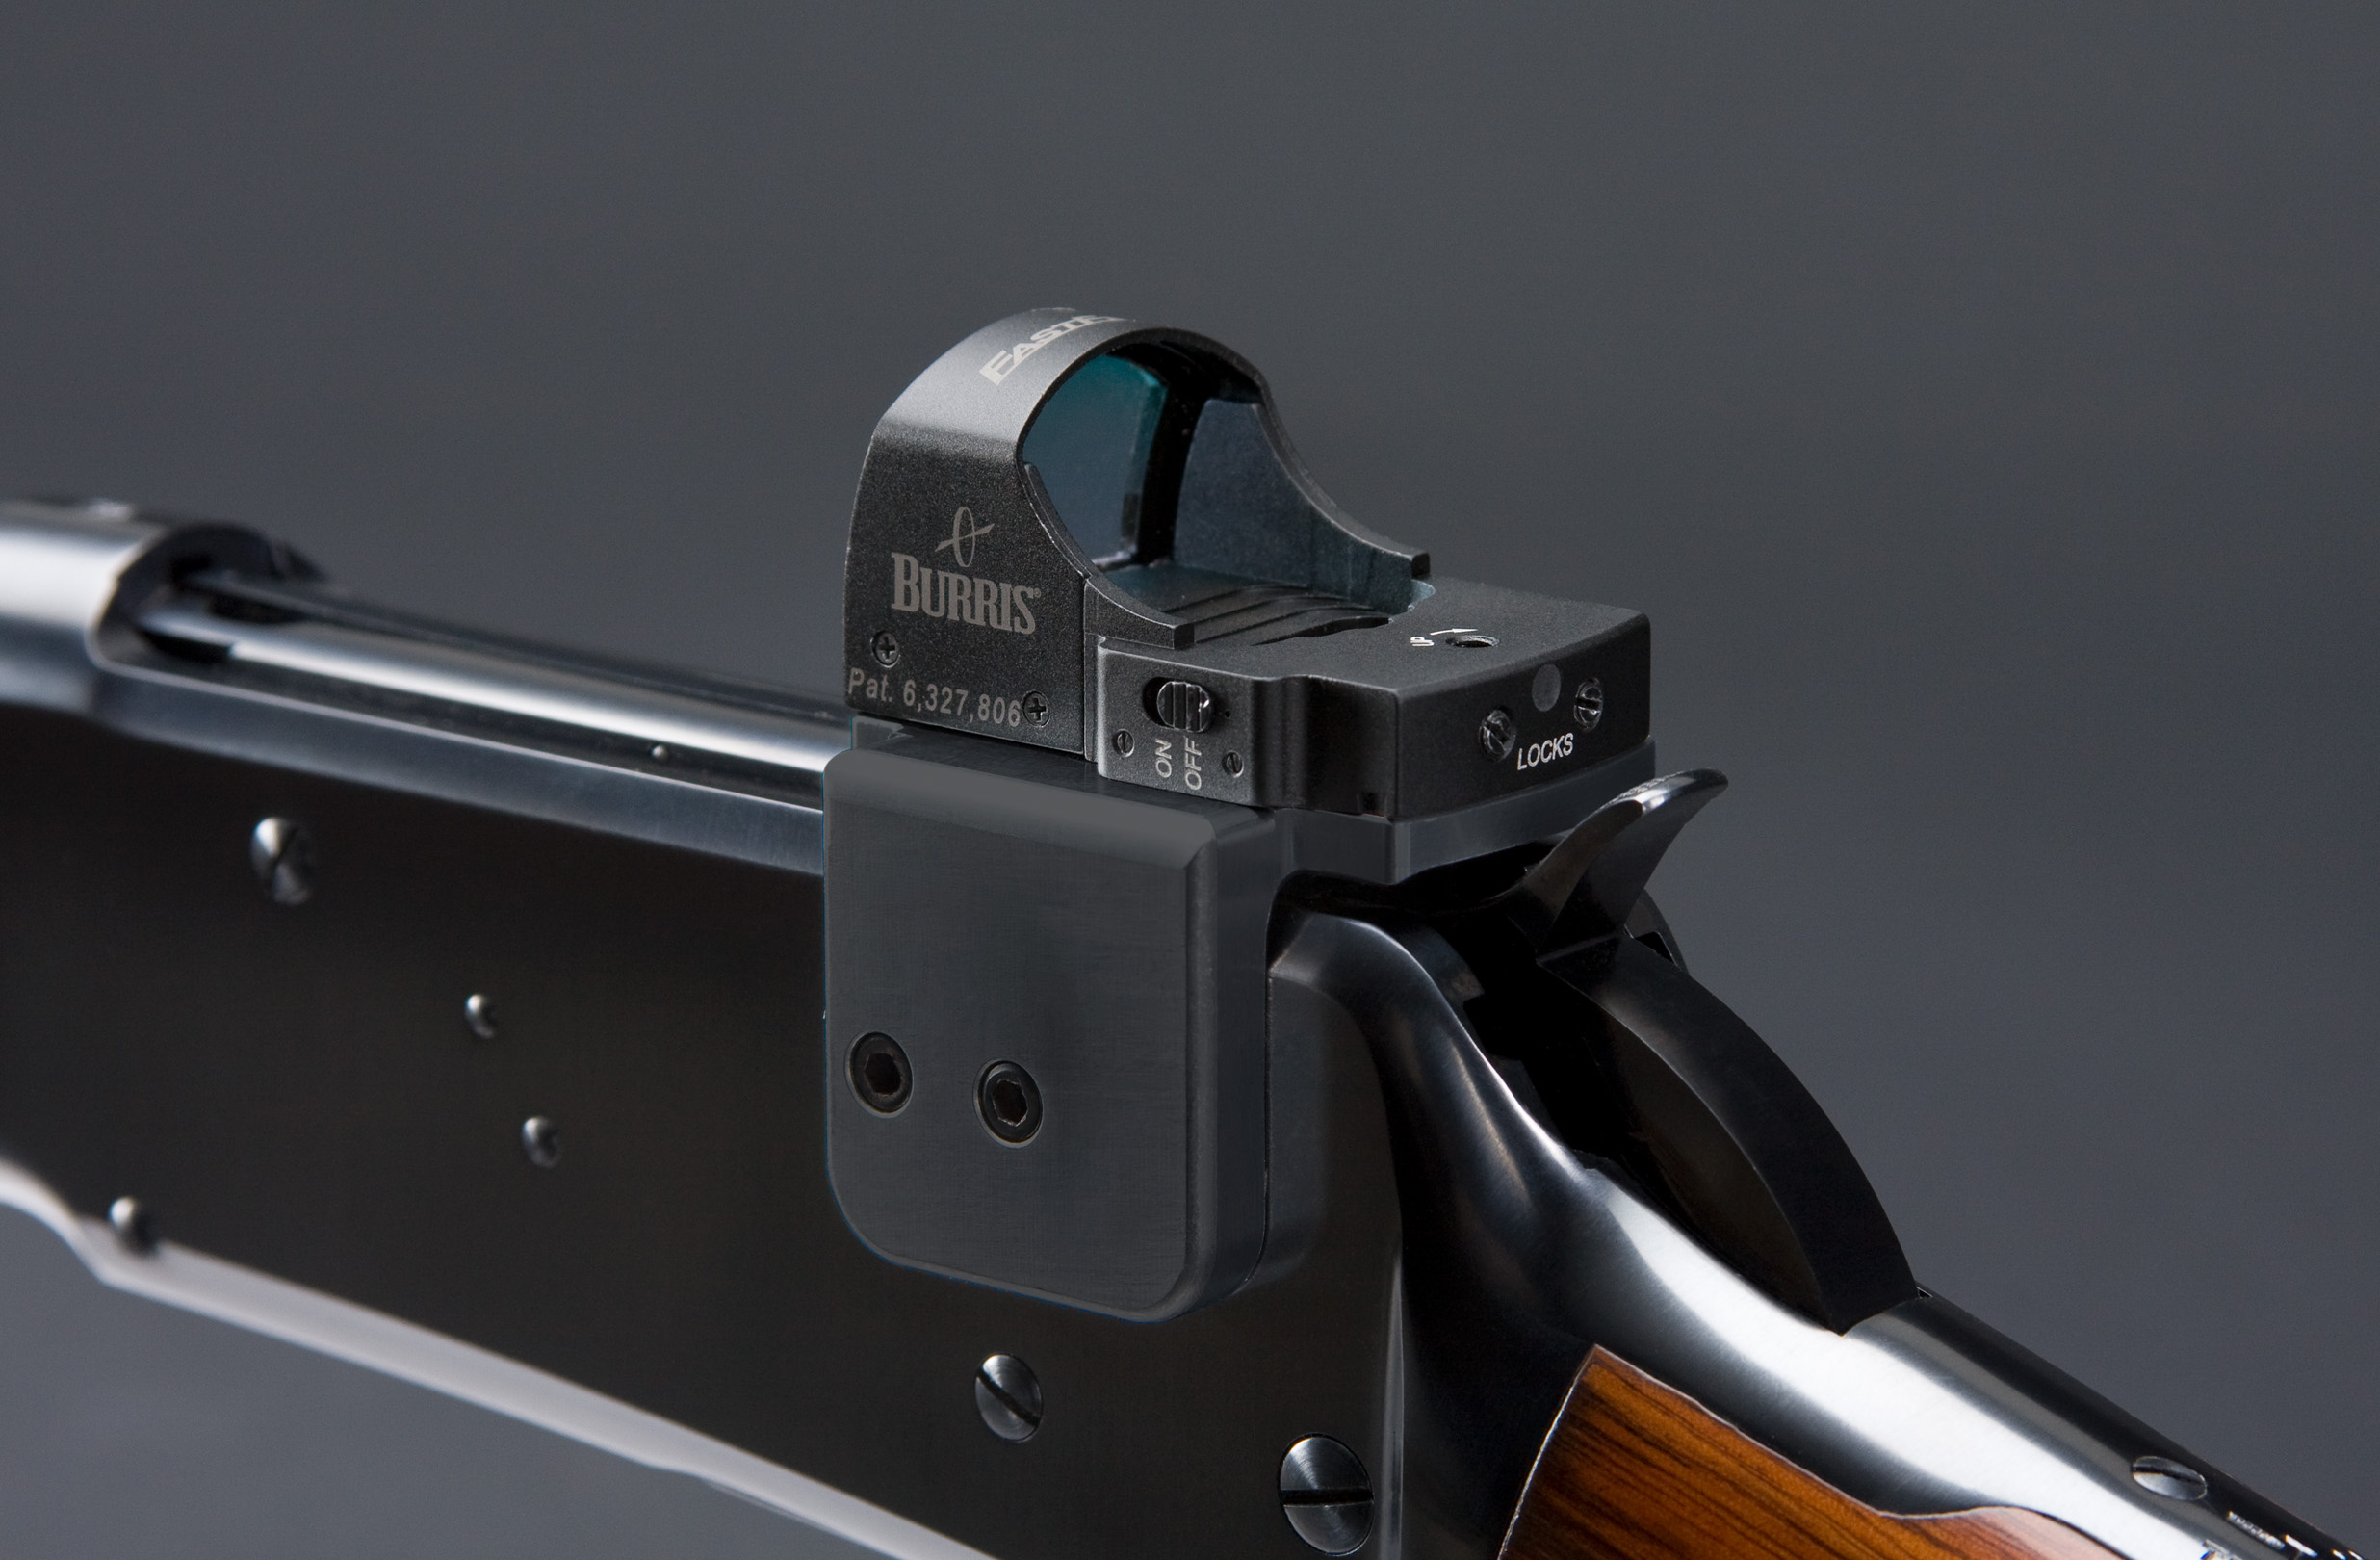 FastFire Receiver Mount - Model 1892 and 1894